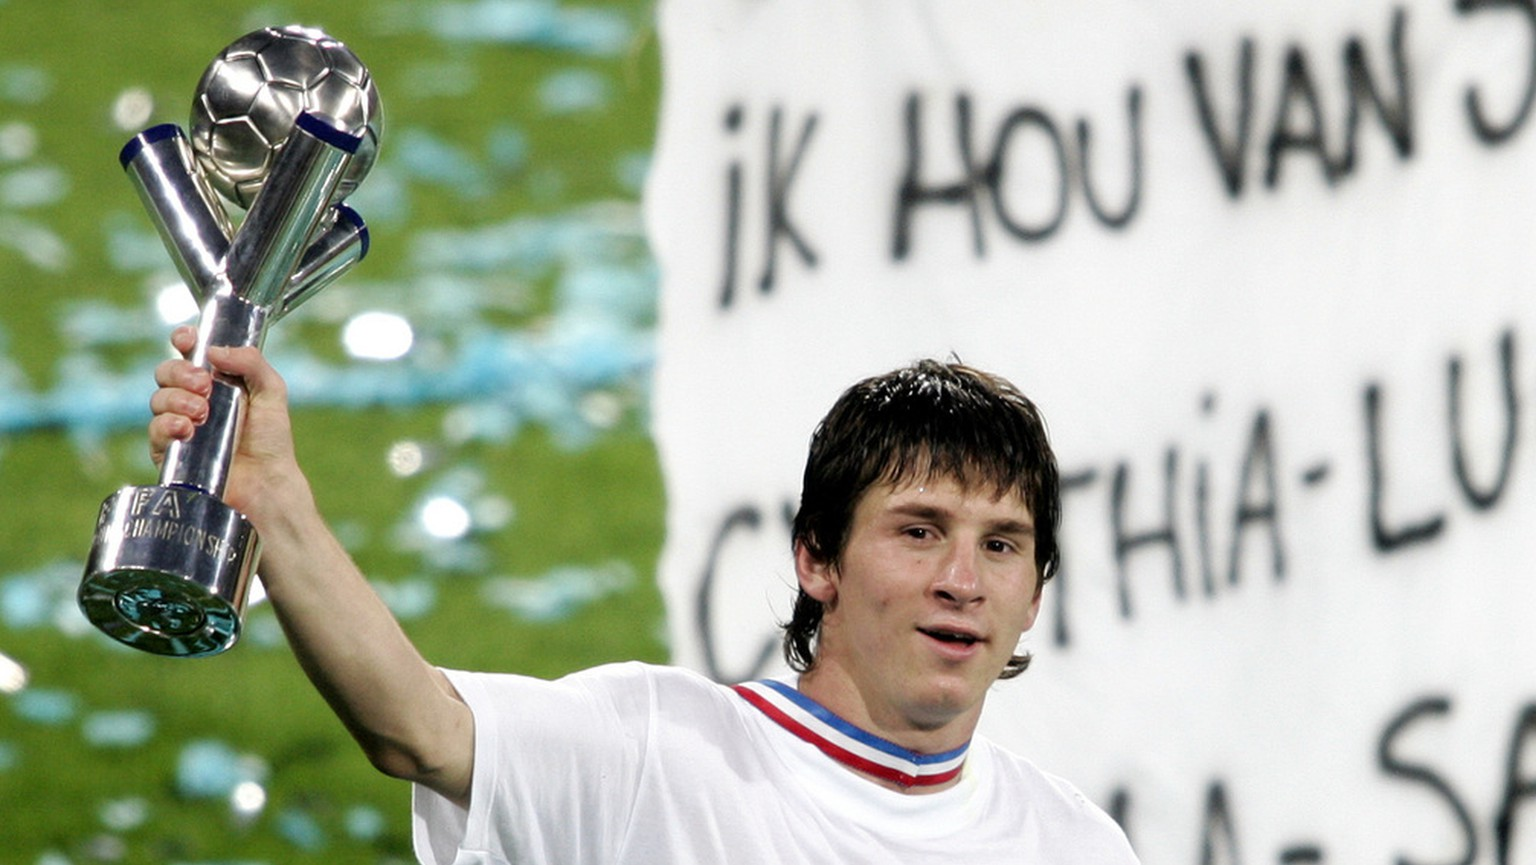 Argentina's soccer player Lionel Messi, celebrates with the trophy after Argentina beat Nigeria 2-1 during the final World Championships soccer under 20  match between Nigeria and Argentina at the Galgenwaard stadium in Utrecht, The Netherlands, Saturday July 2, 2005. Banner in the background says: Argentina I love you. (AP Photo/Bas Czerwinski)